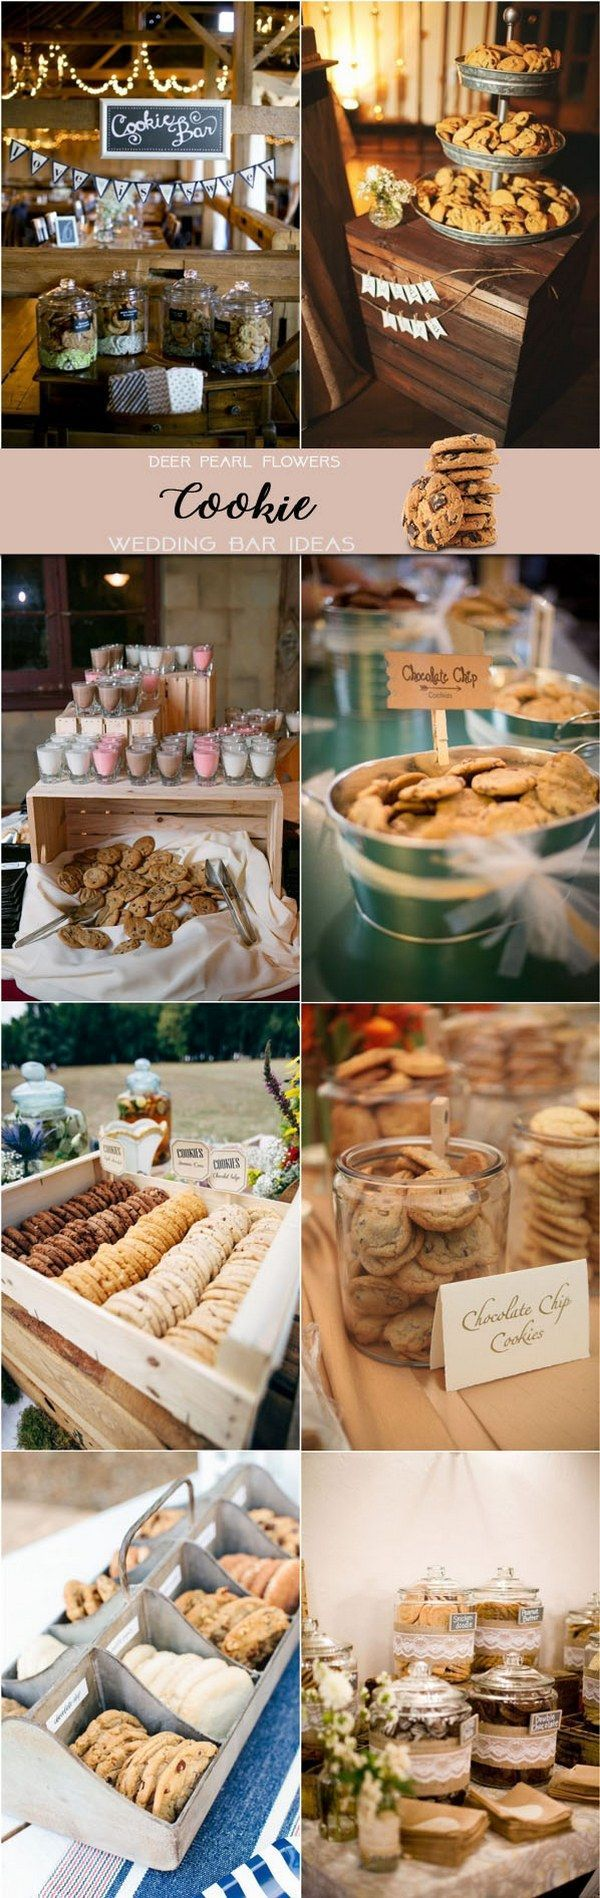 Best 25+ Catering food displays ideas on Pinterest | Appetizer table display, Food displays and ...